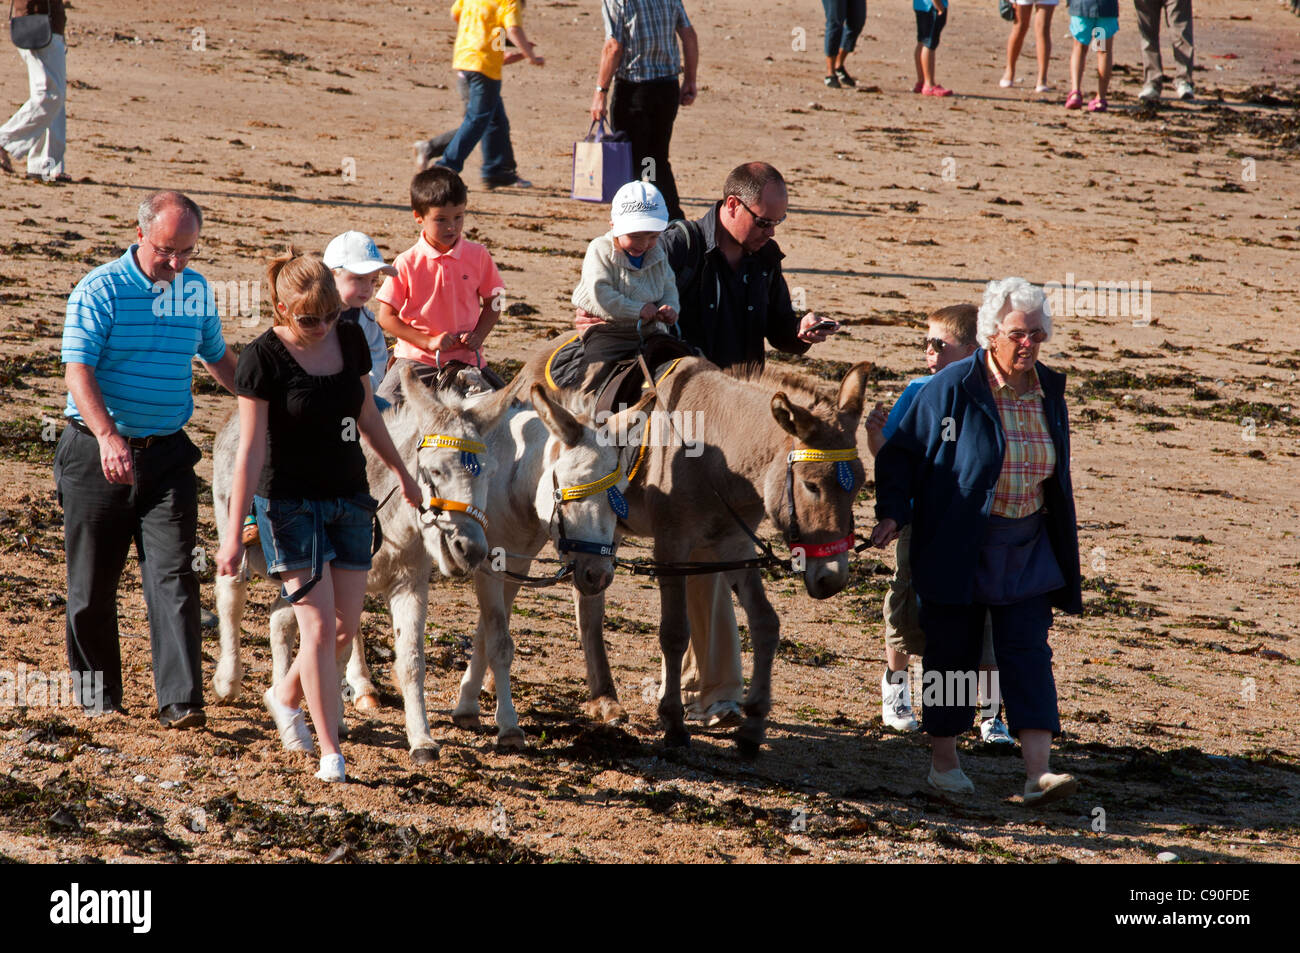 Donkey rides on the beach, the seaside resort of Llandudno, Wales, UK Stock Photo